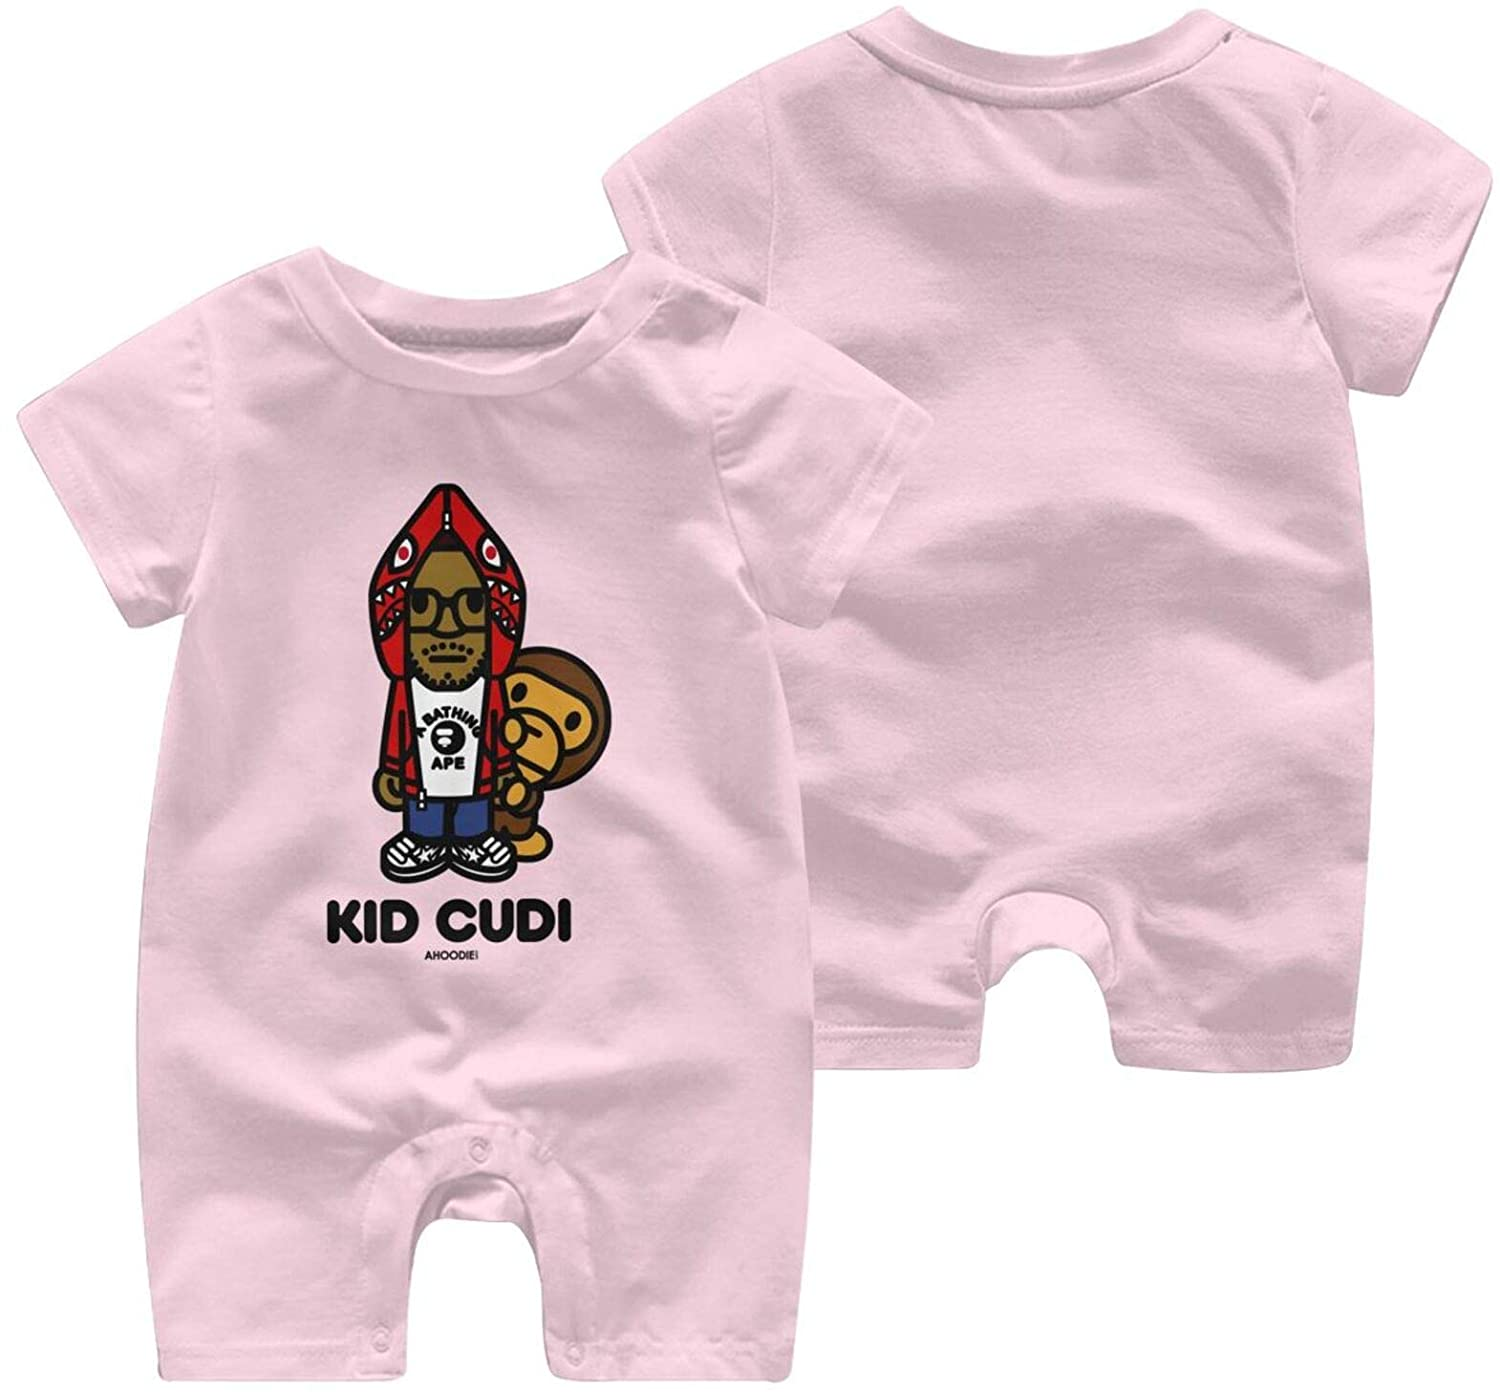 Shanion Kid Cudi Comfortable and Cute Baby Short Sleeve Jumpsuit